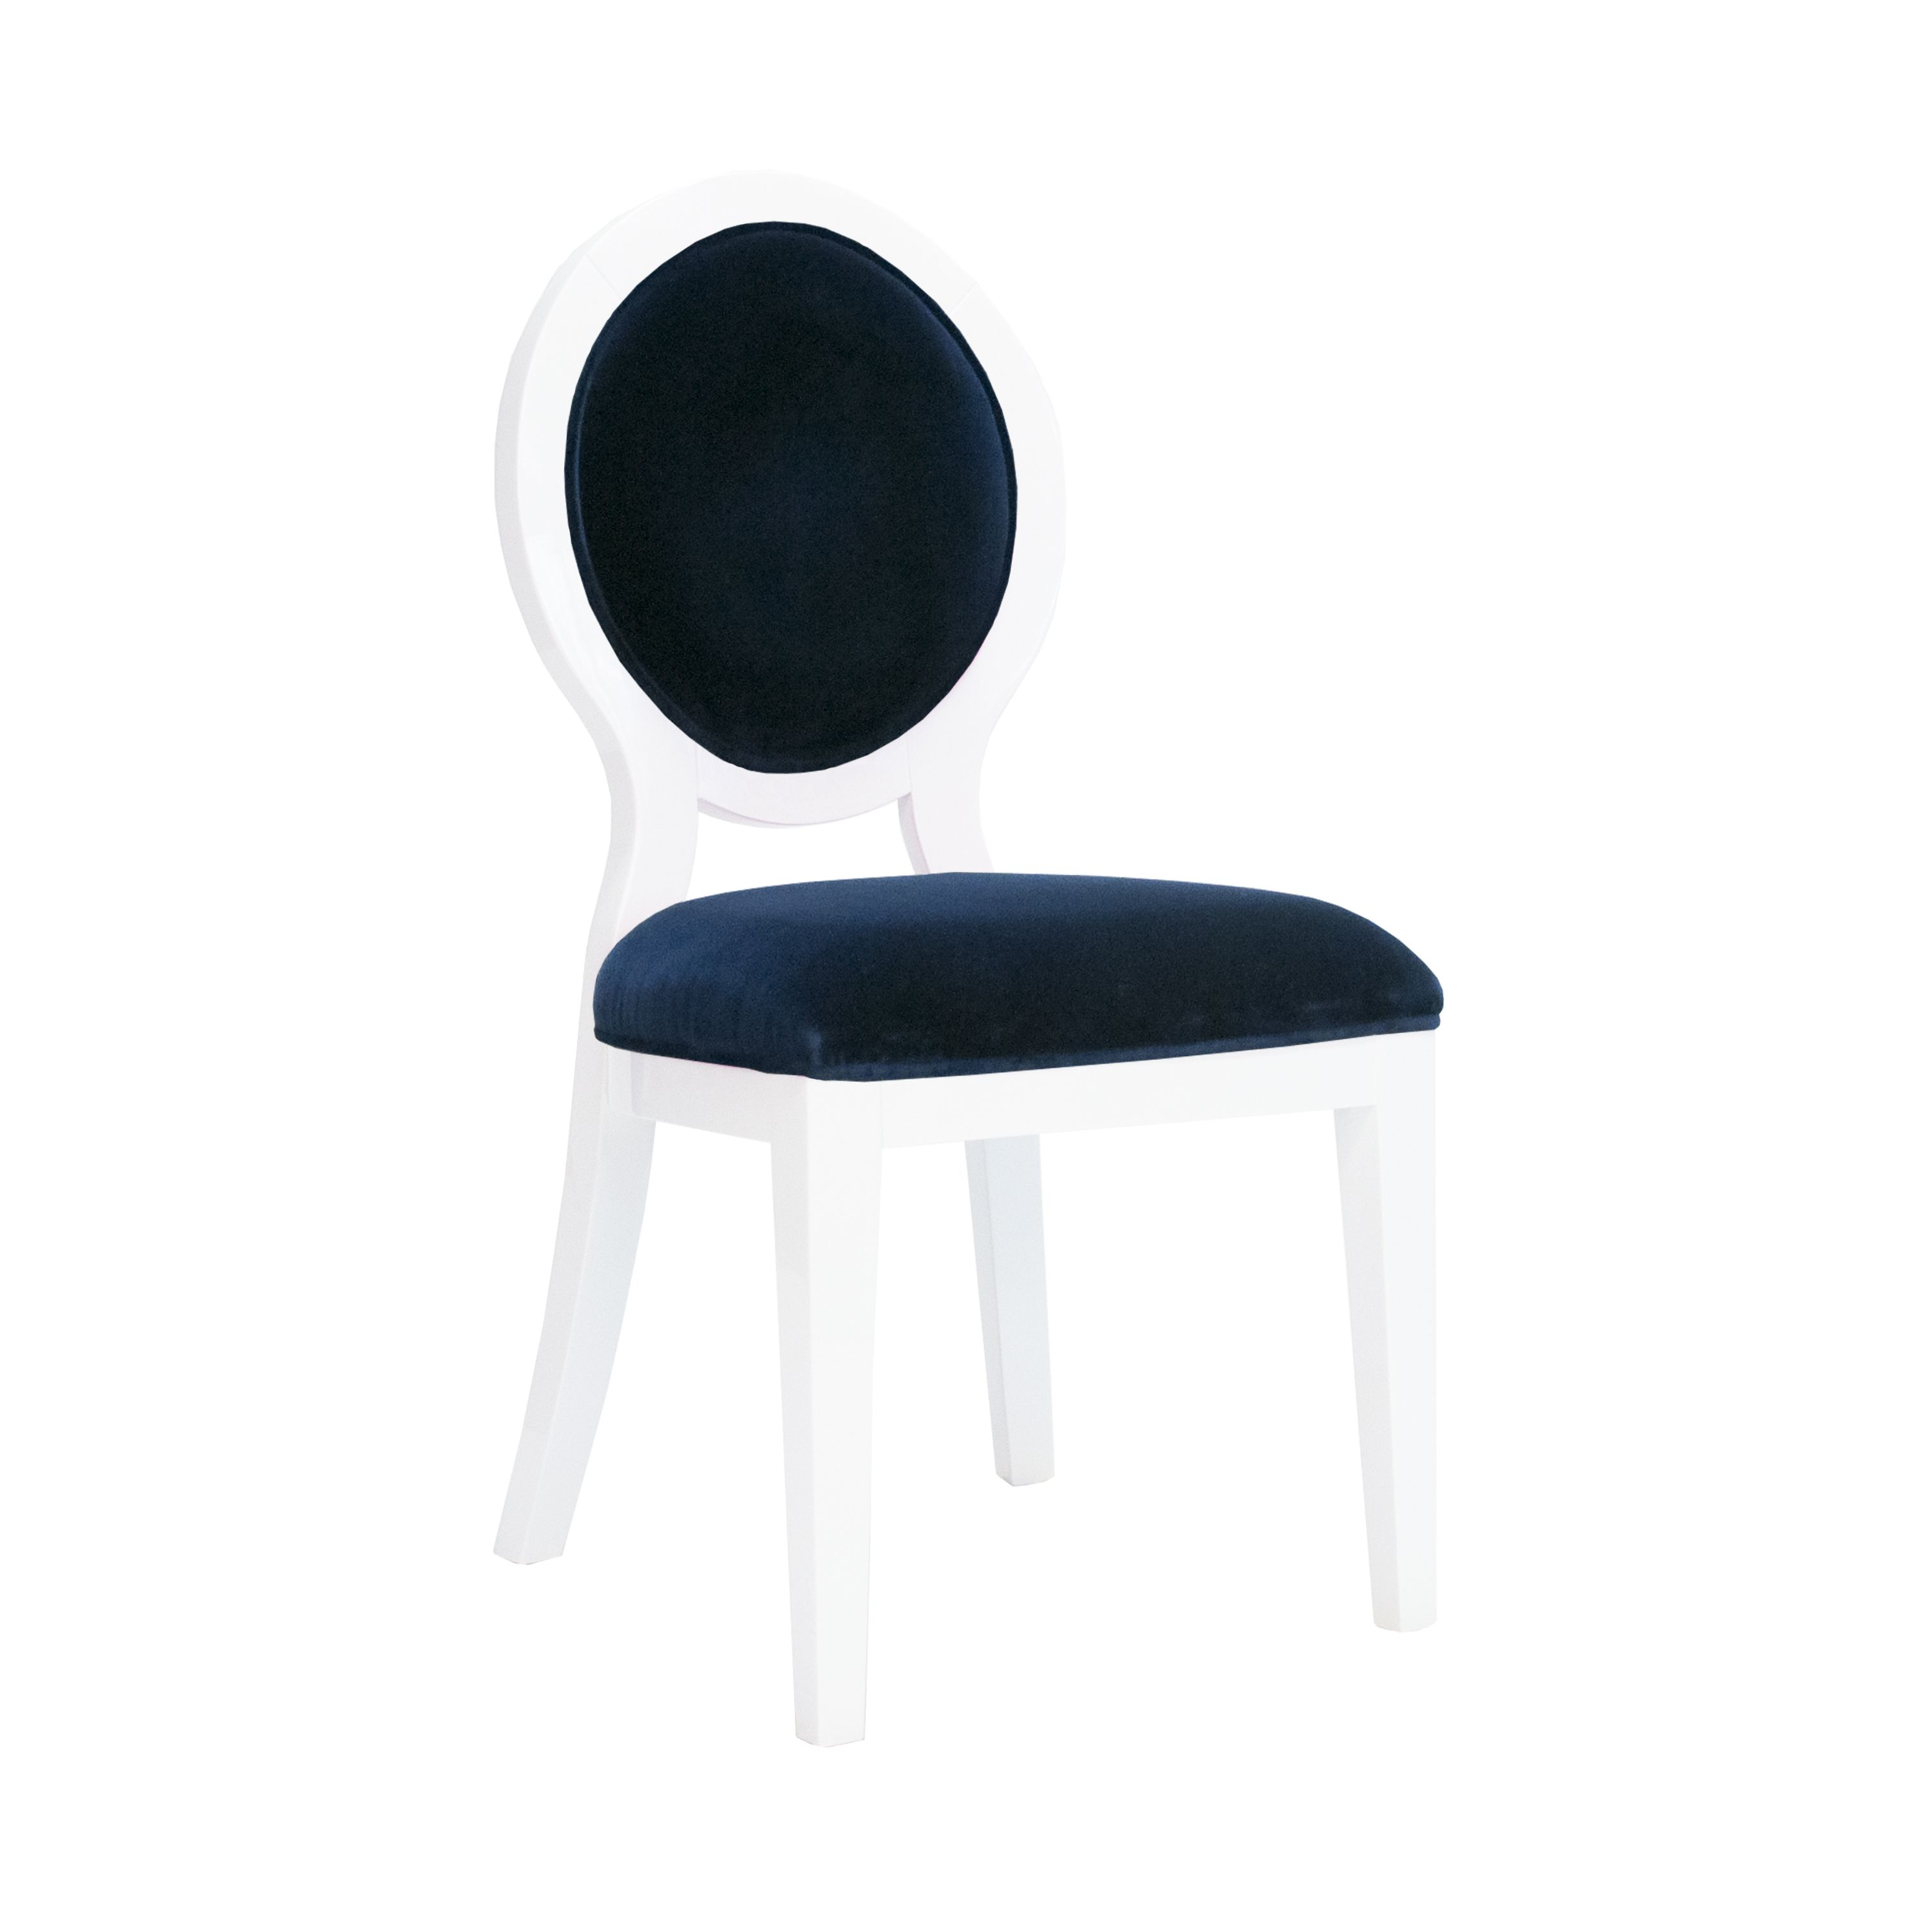 worlds away overton navy chair dining chairs dining chairs rh pinterest com